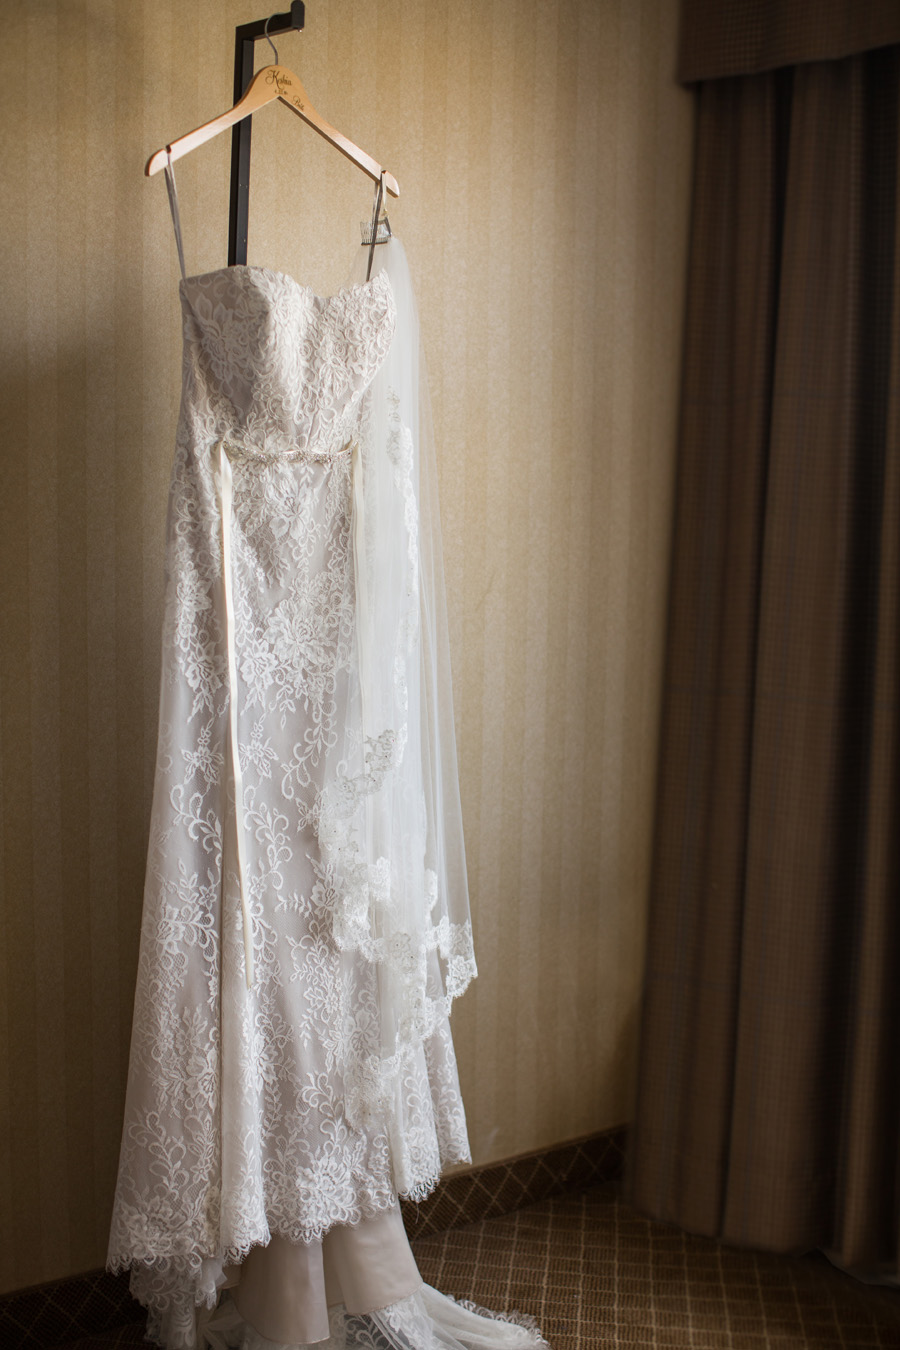 Fancy Pastors Gowns Crest - Wedding and flowers ispiration - sessa.us